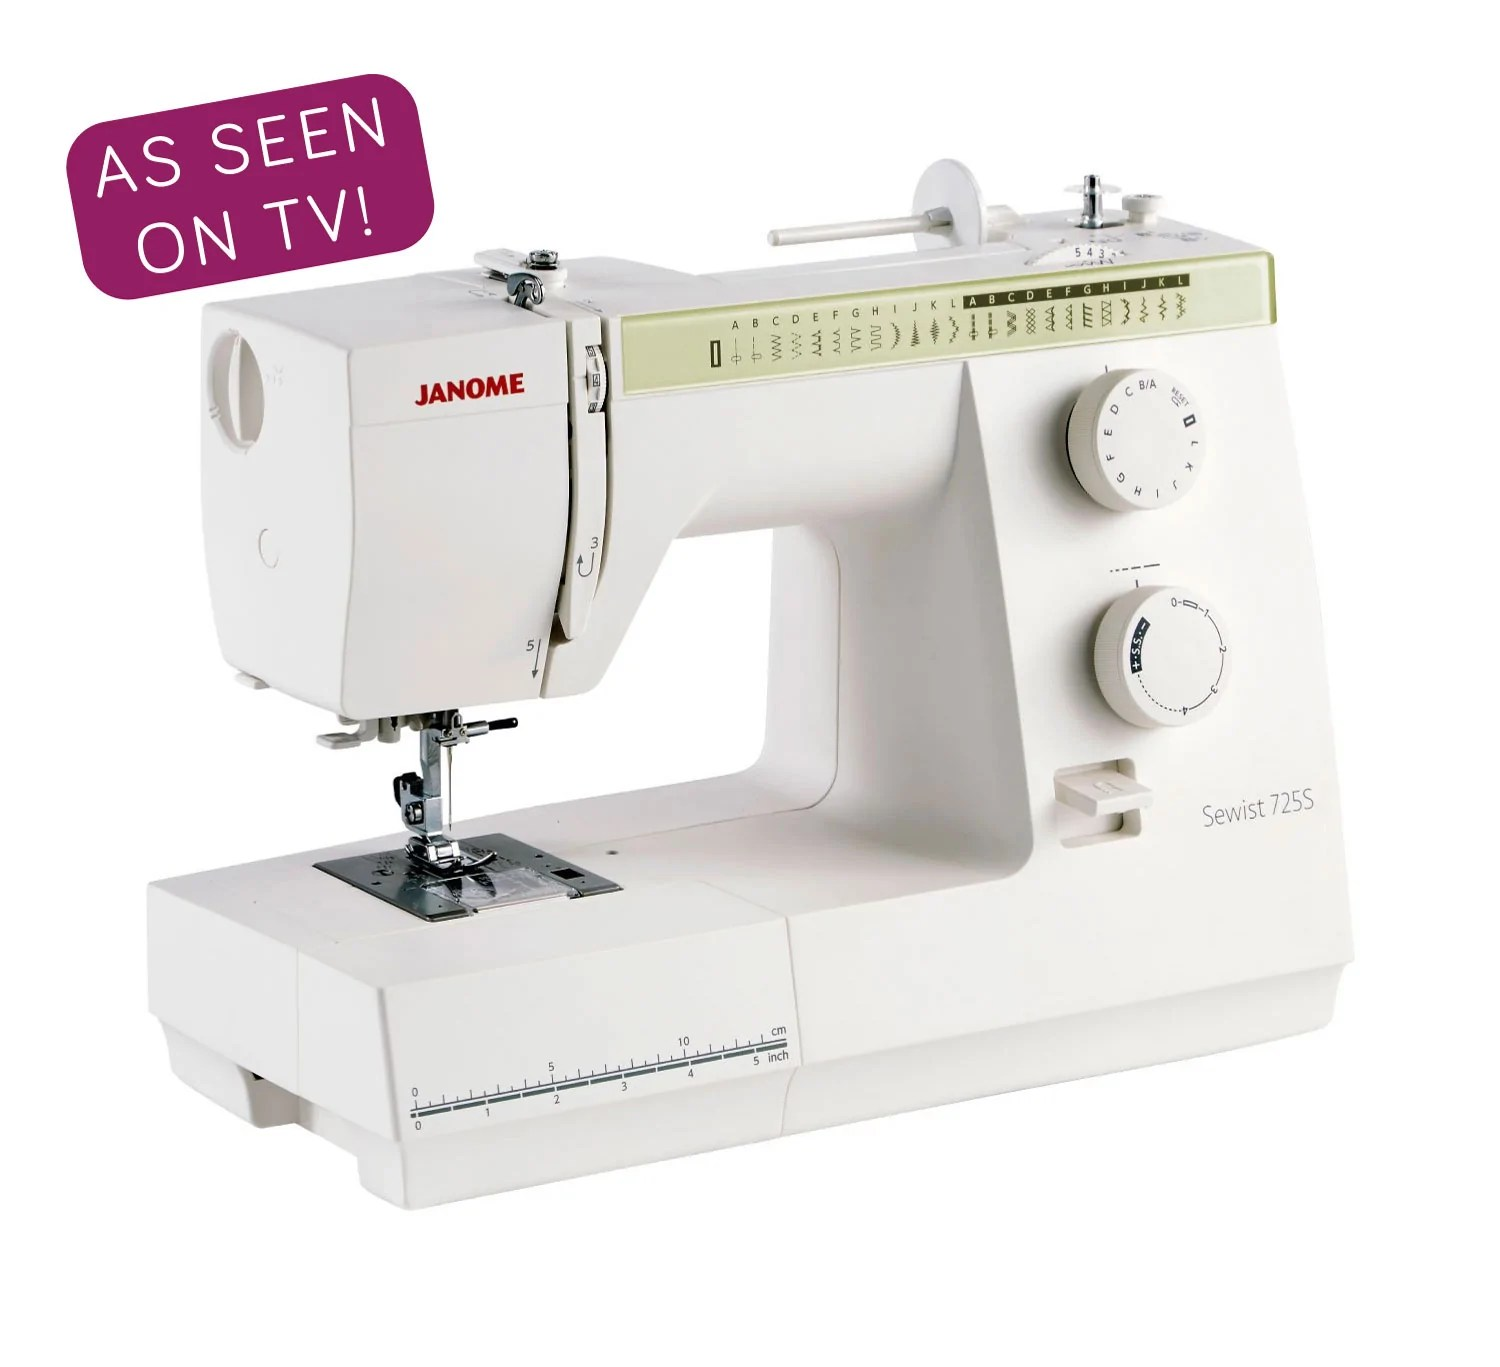 Electromenager Occasion Var Janome 725s Sewing Machine Weaverdee